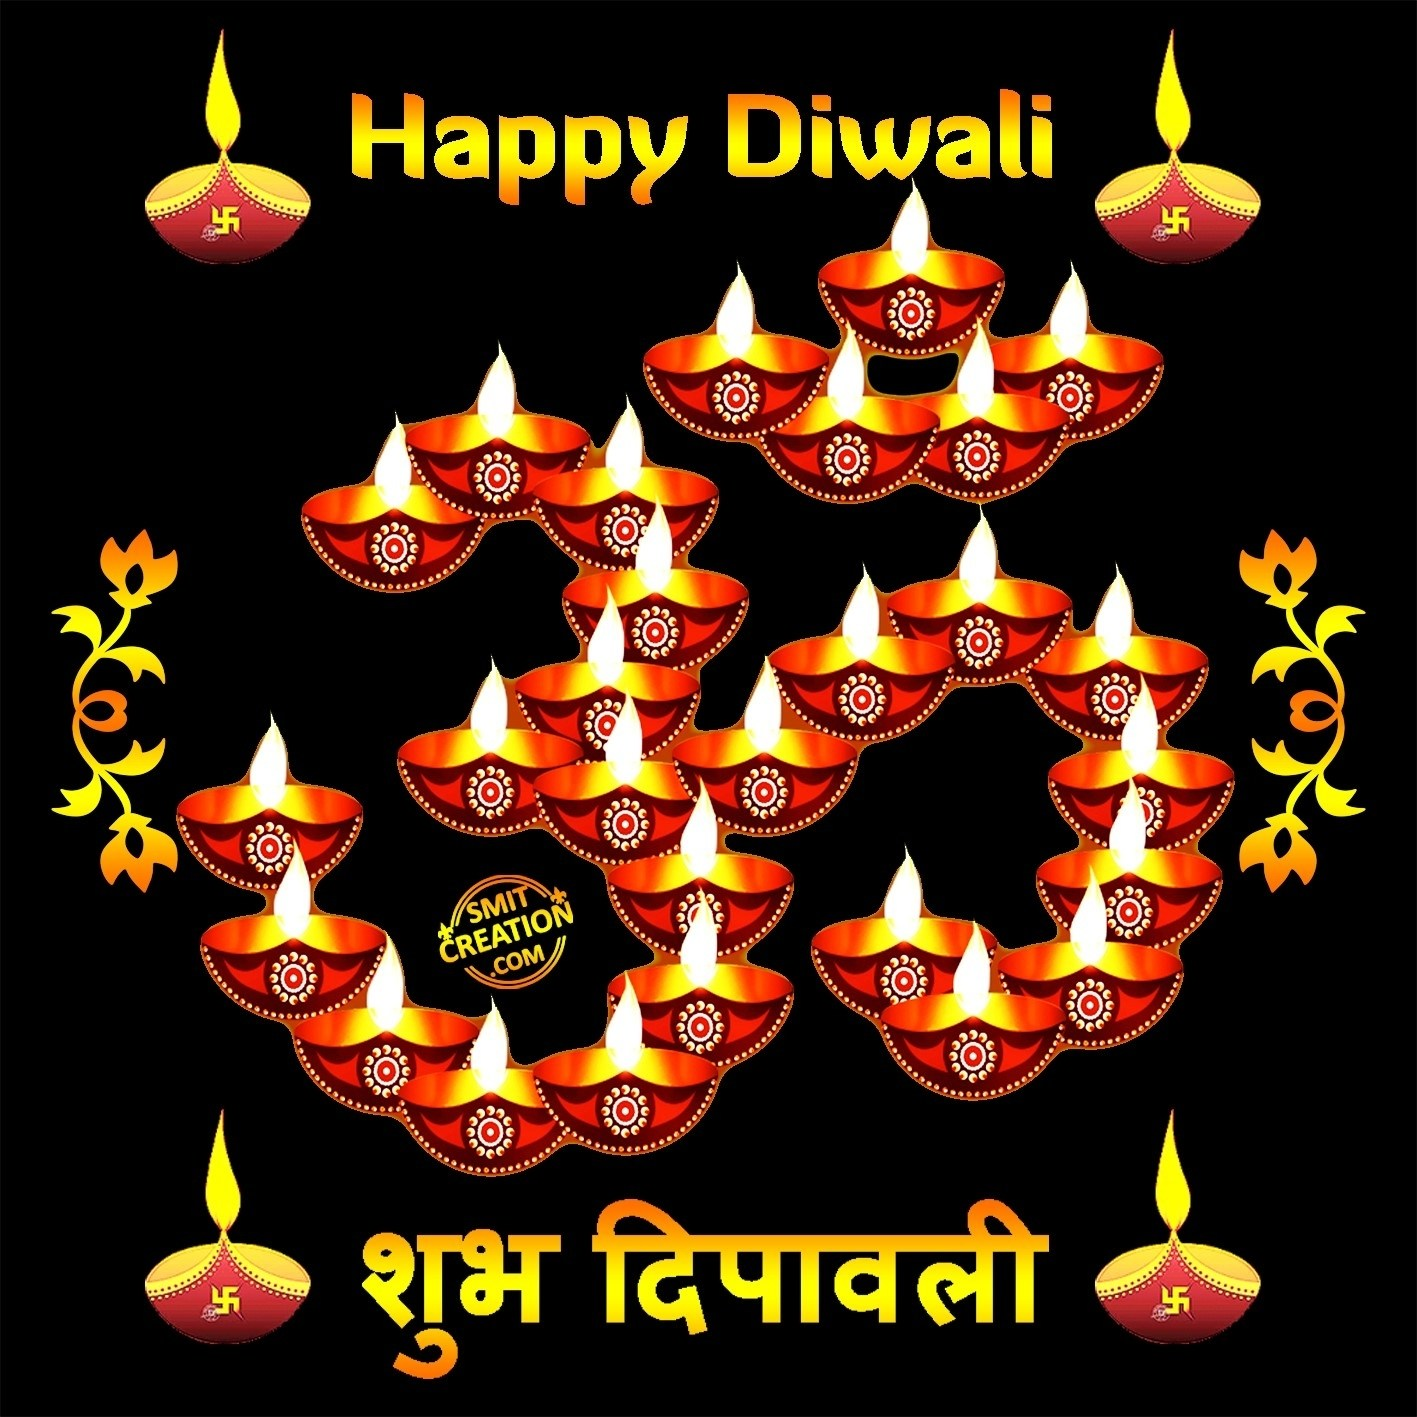 diwali pictures and graphics   smitcreation     page 3